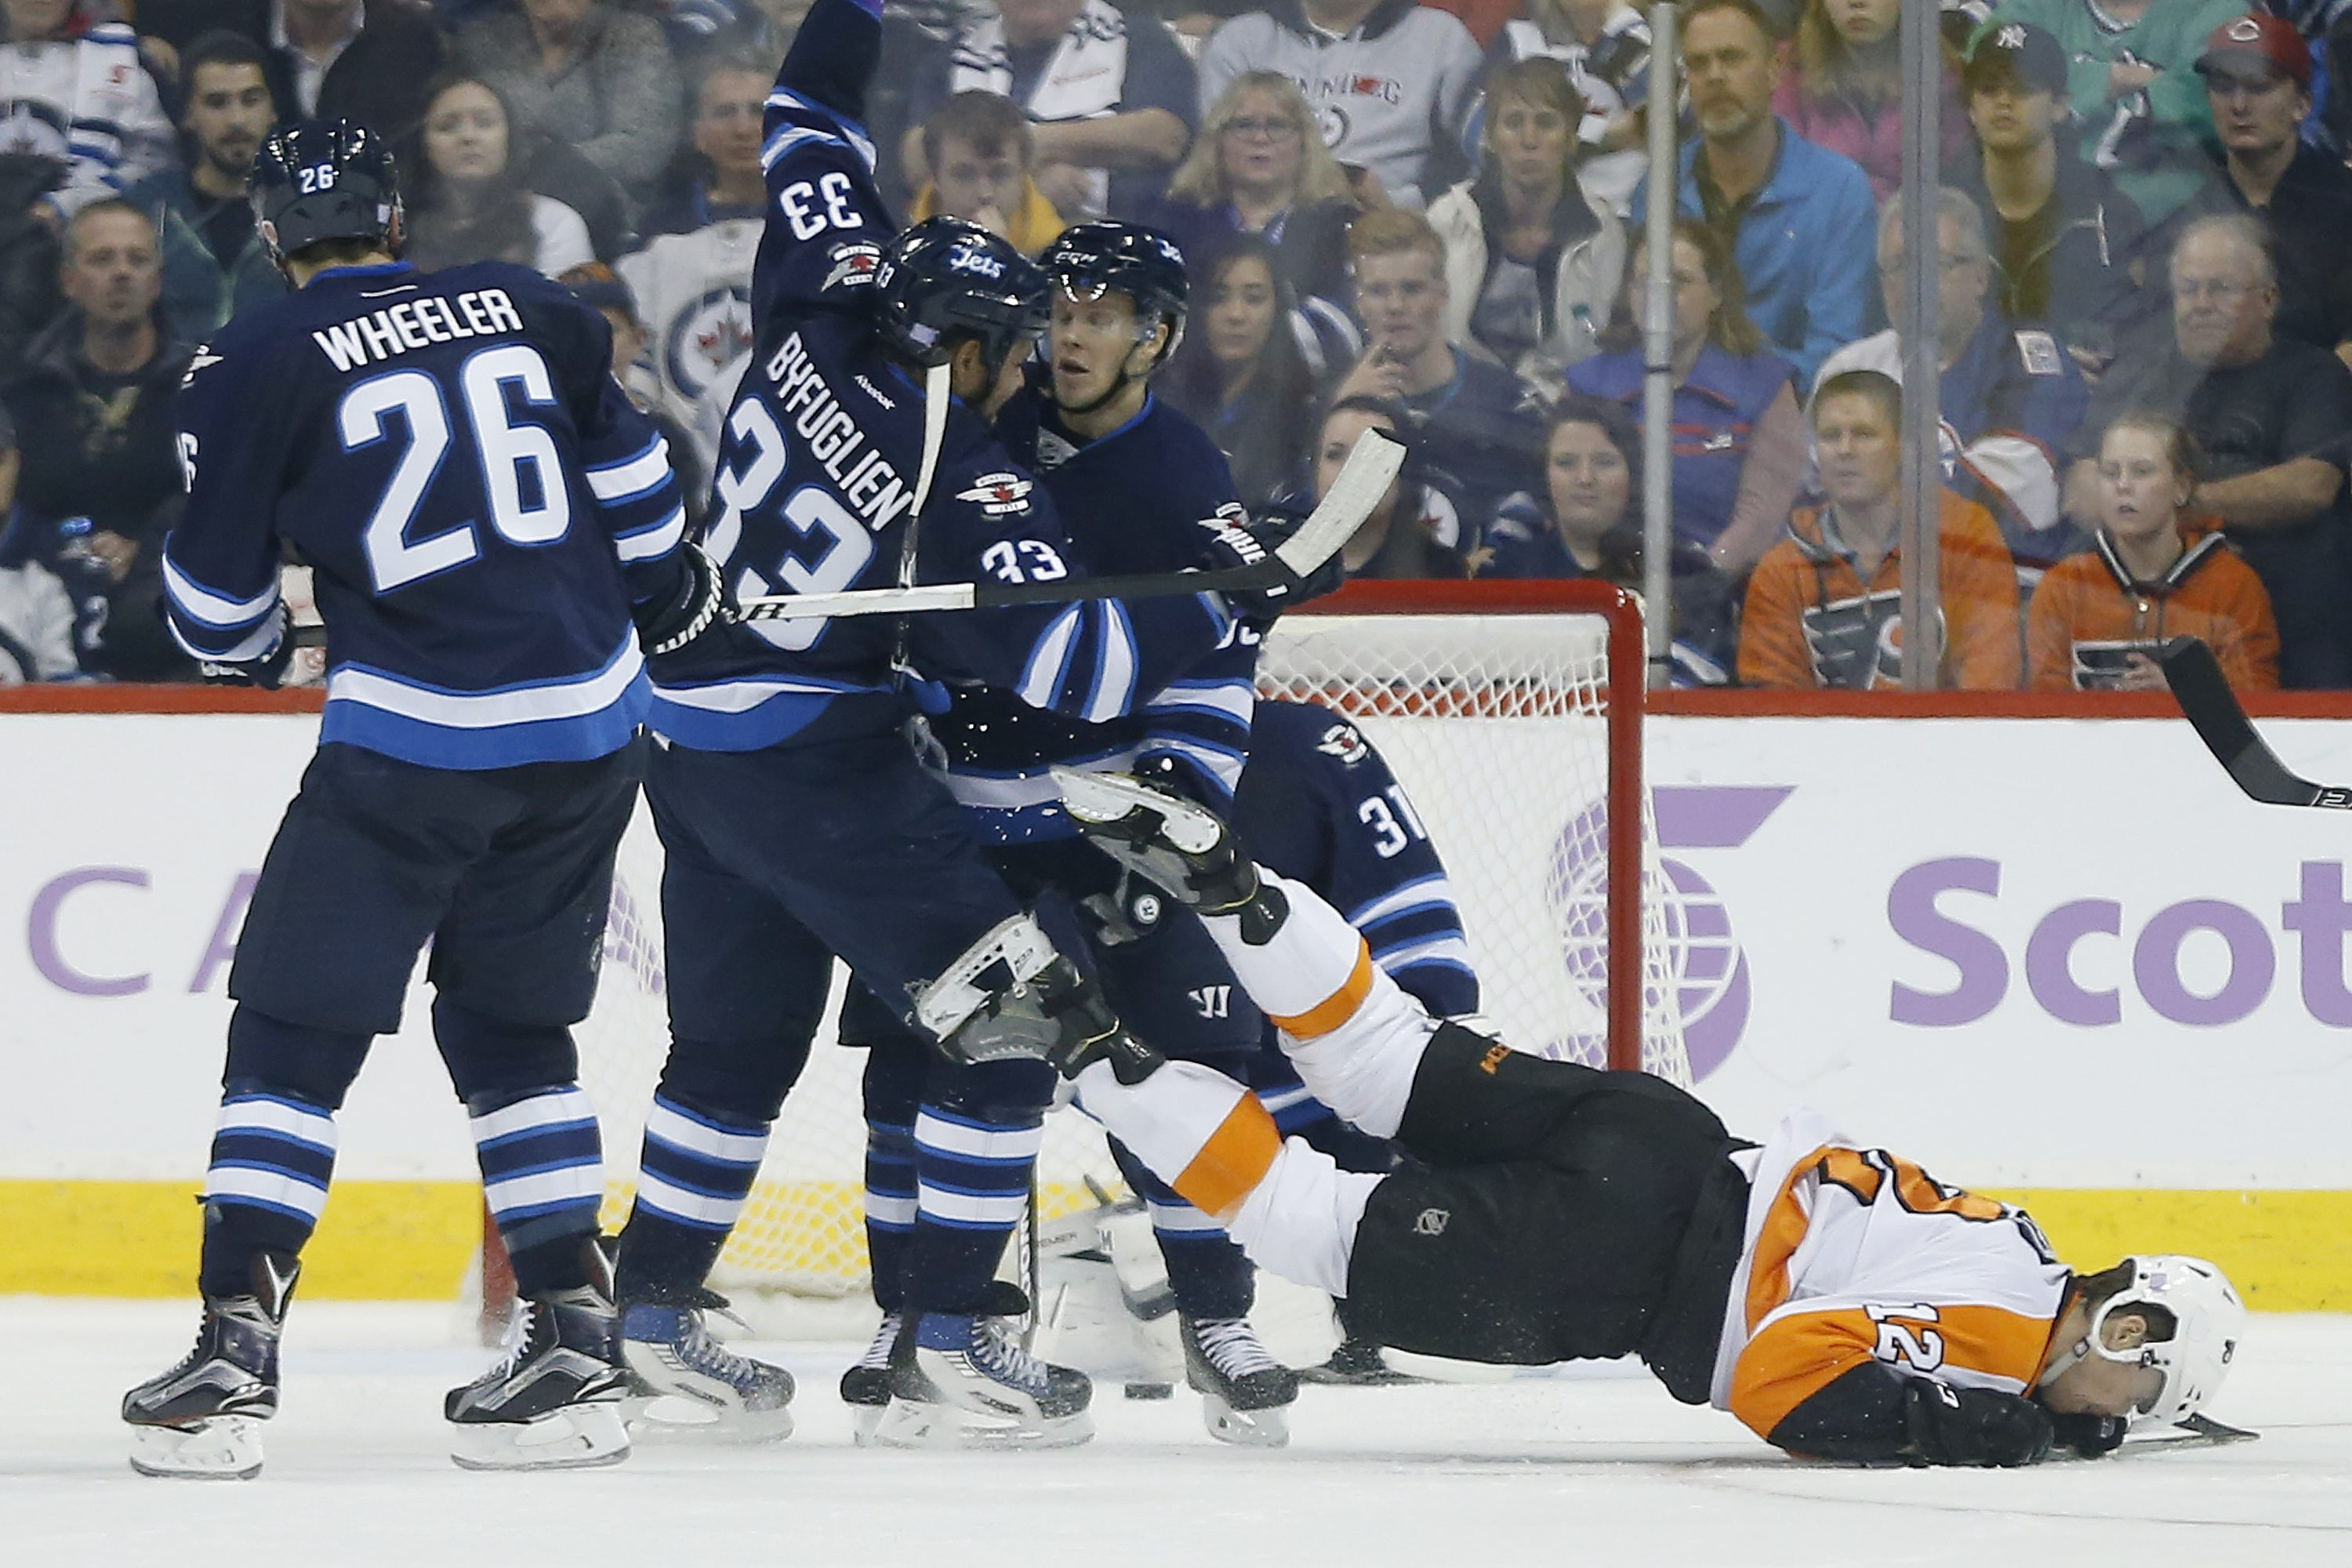 Philadelphia Flyers' Michael Raffl (12) hits the ice hard after he gets dumped by Winnipeg Jets' Dustin Byfuglien (33) during second period NHL action, in Winnipeg, on Saturday, Nov. 7, 2015. (John Woods/The Canadian Press via AP)